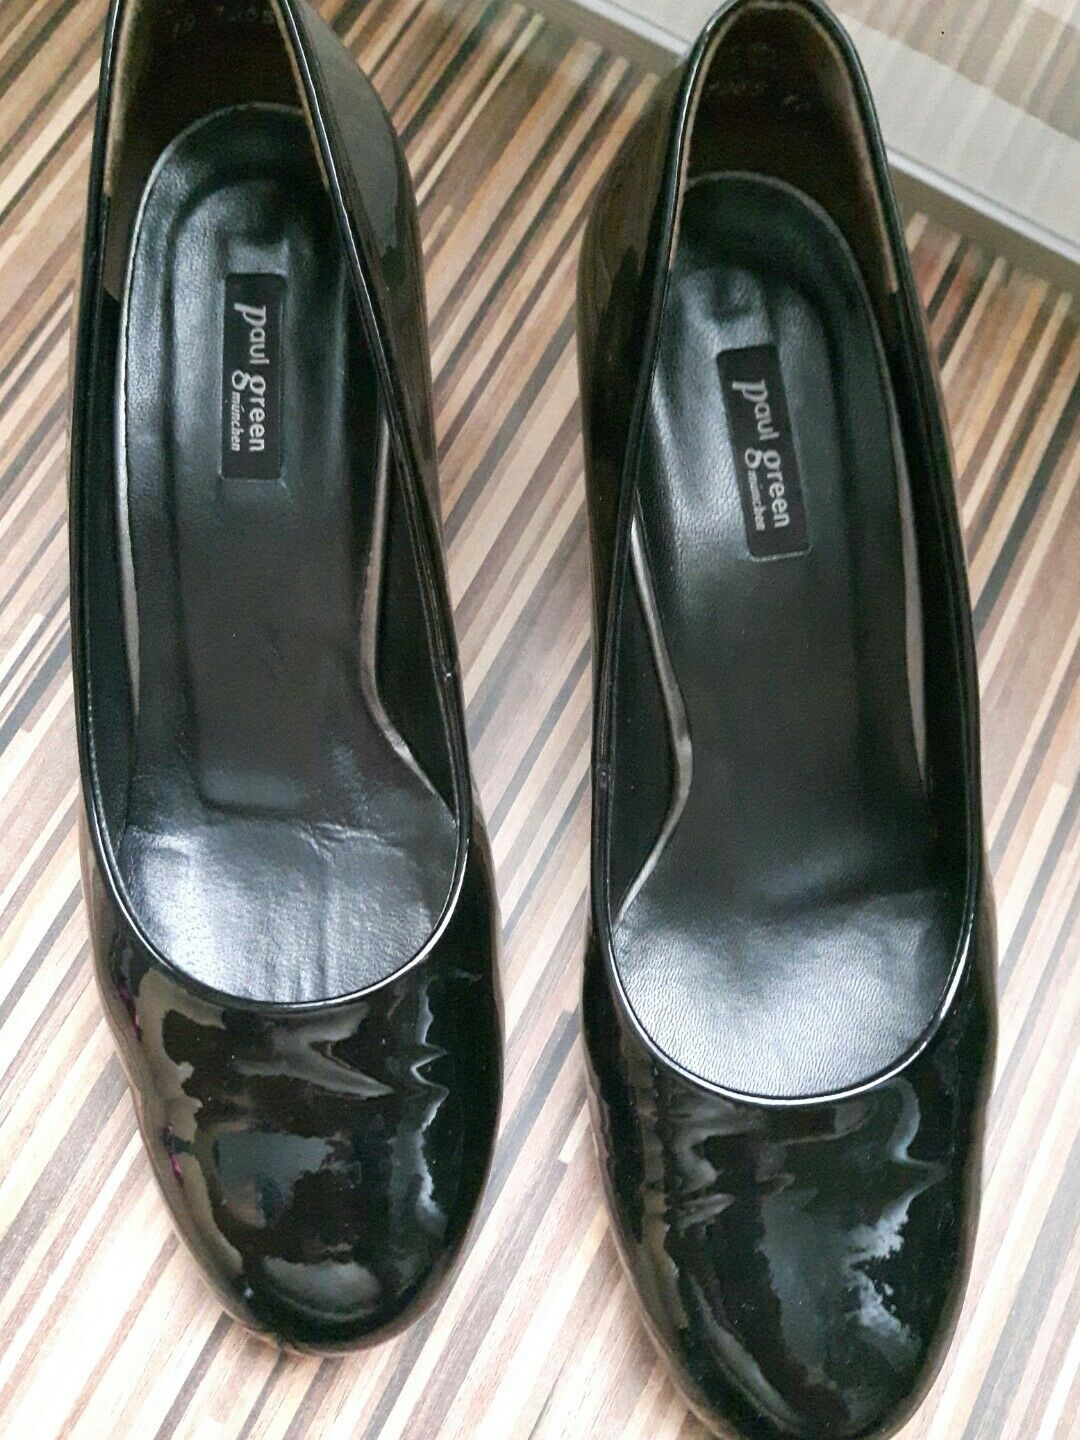 ☸✰☸✰☸ Nero Paul verde VERNICE PUMPS 5 Nero ☸✰☸✰☸ Taglia 5 PUMPS   29f427